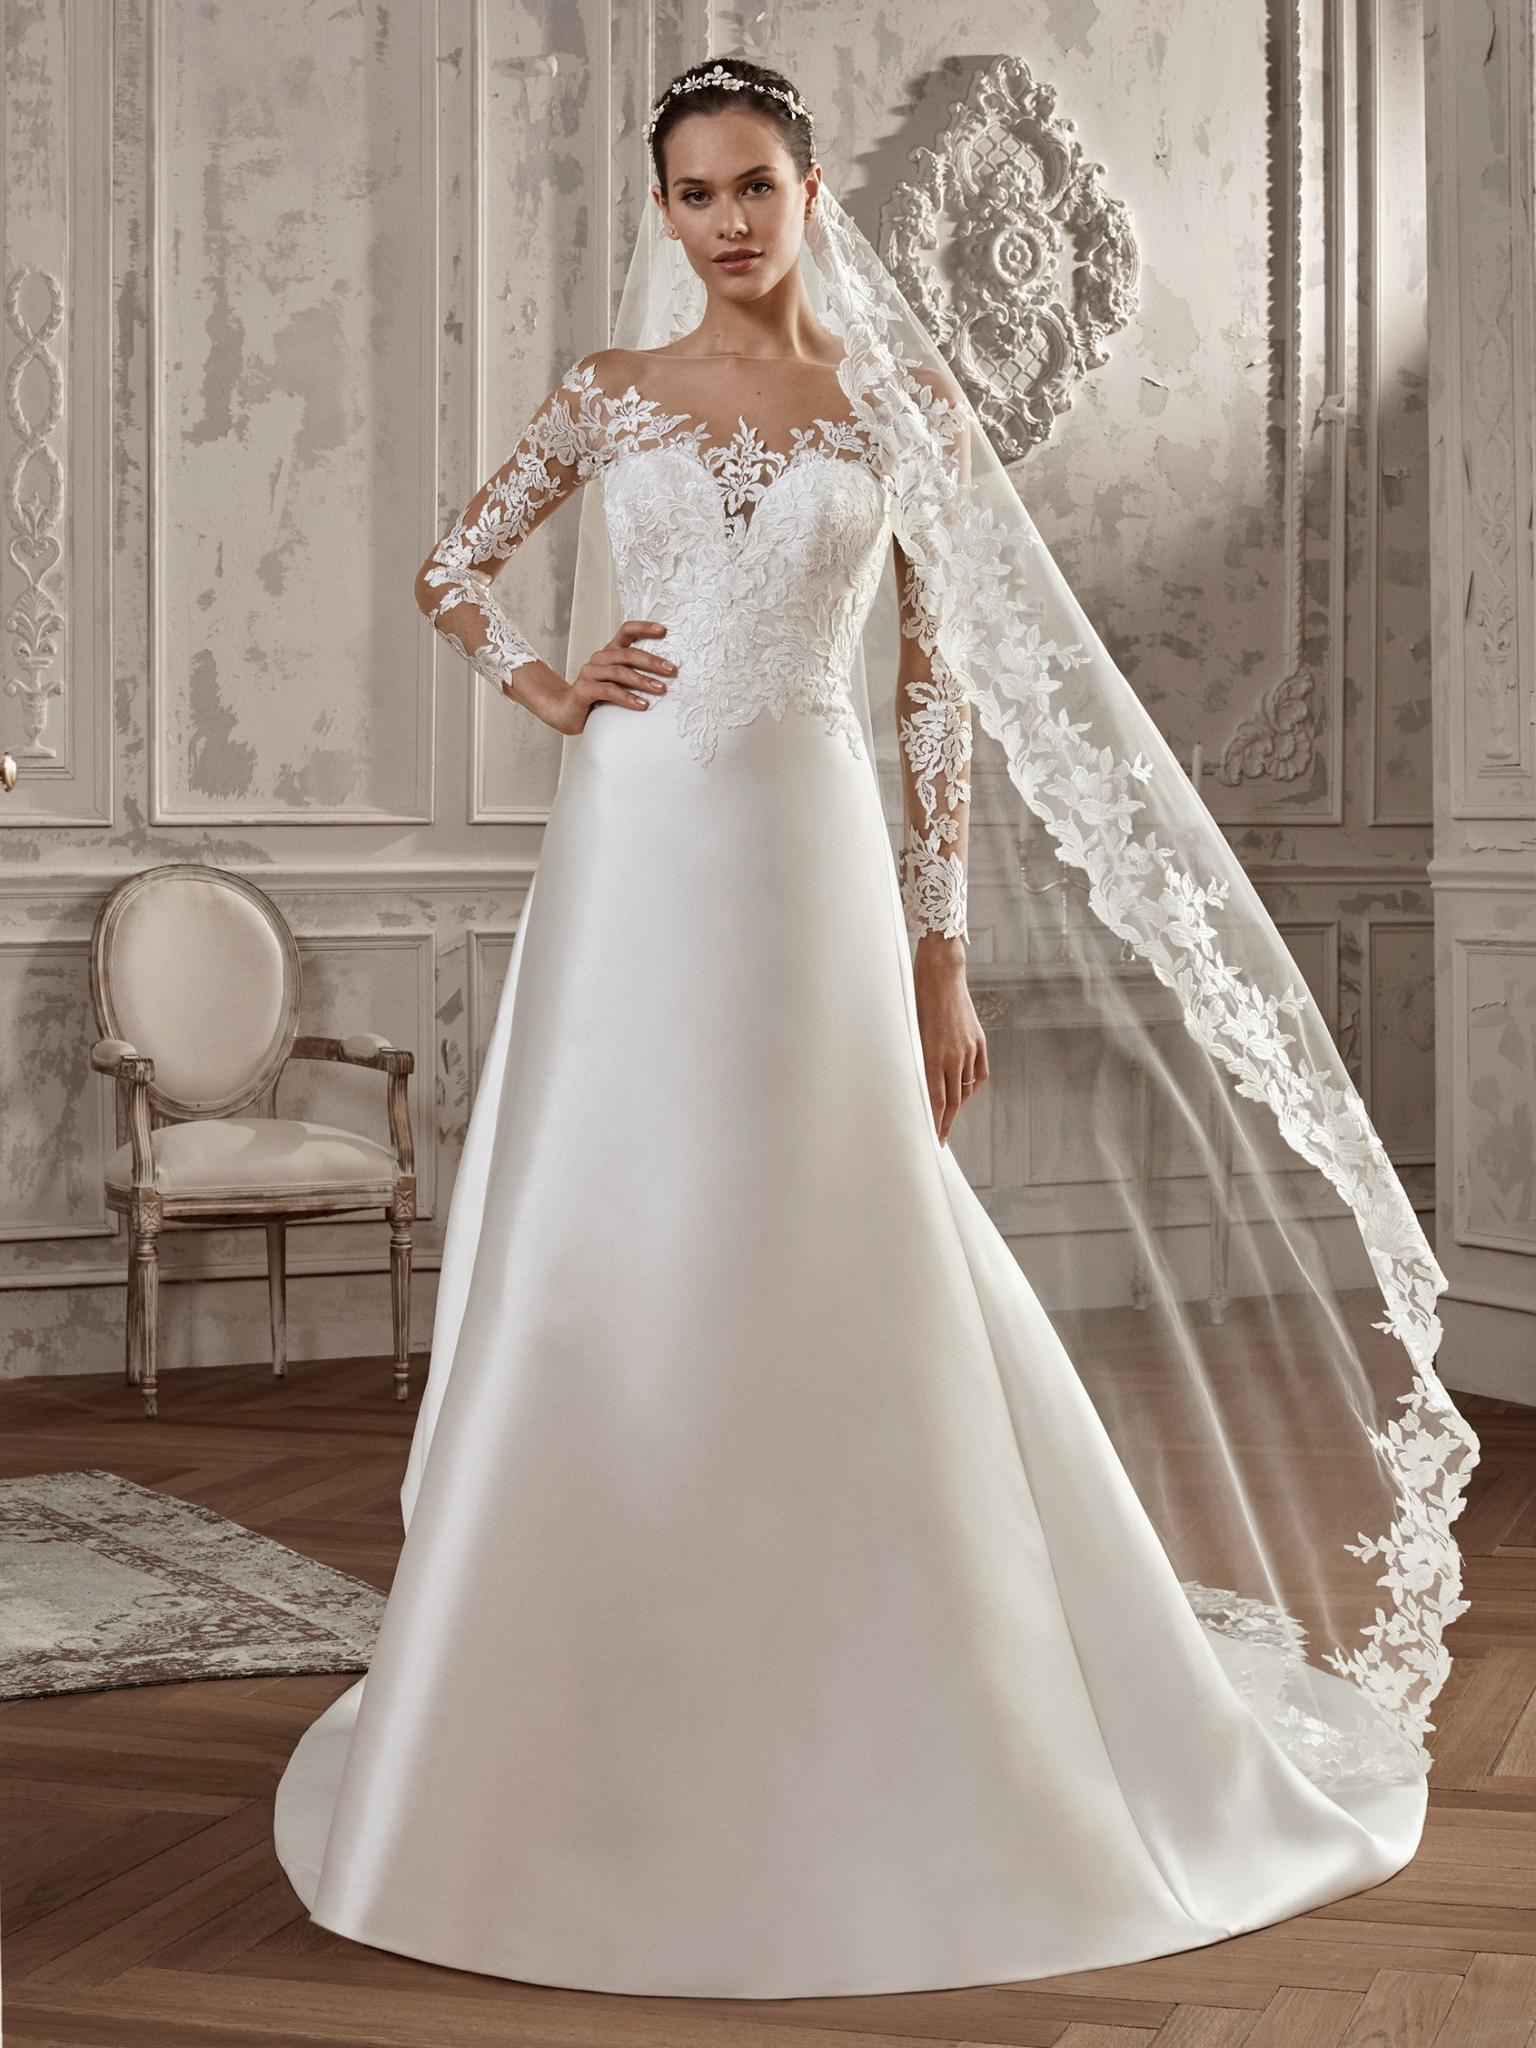 St Patrick ACUARELA B - Vestidos de Noiva 2019 - Bridal Collection 2019